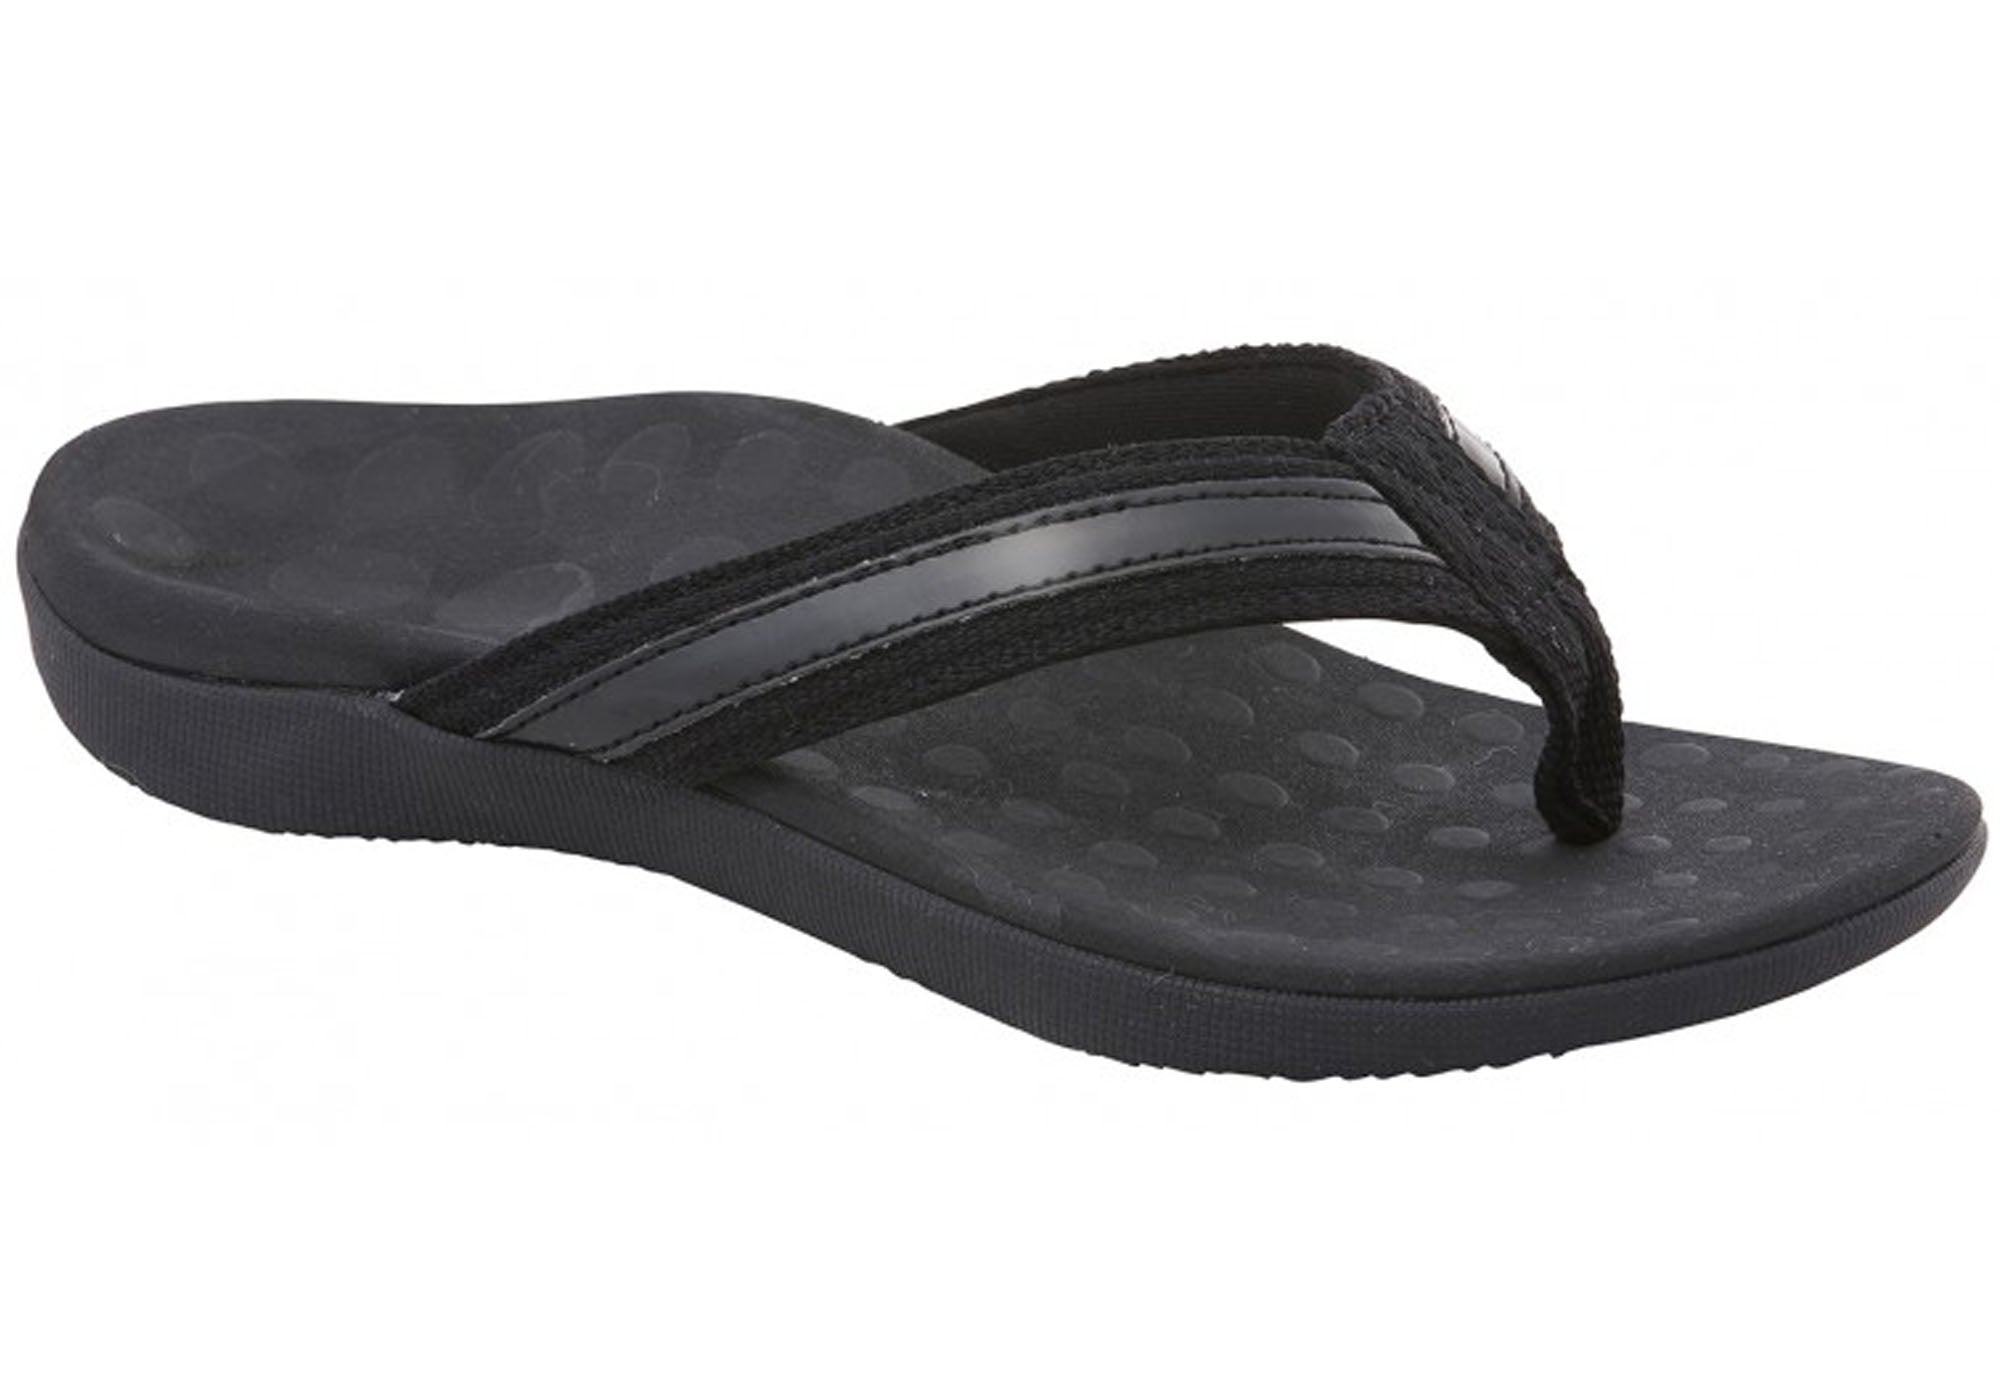 f4e38d06ded Details about Scholl Orthaheel Tide Ii Womens Supportive Orthotic Thong  Sandals